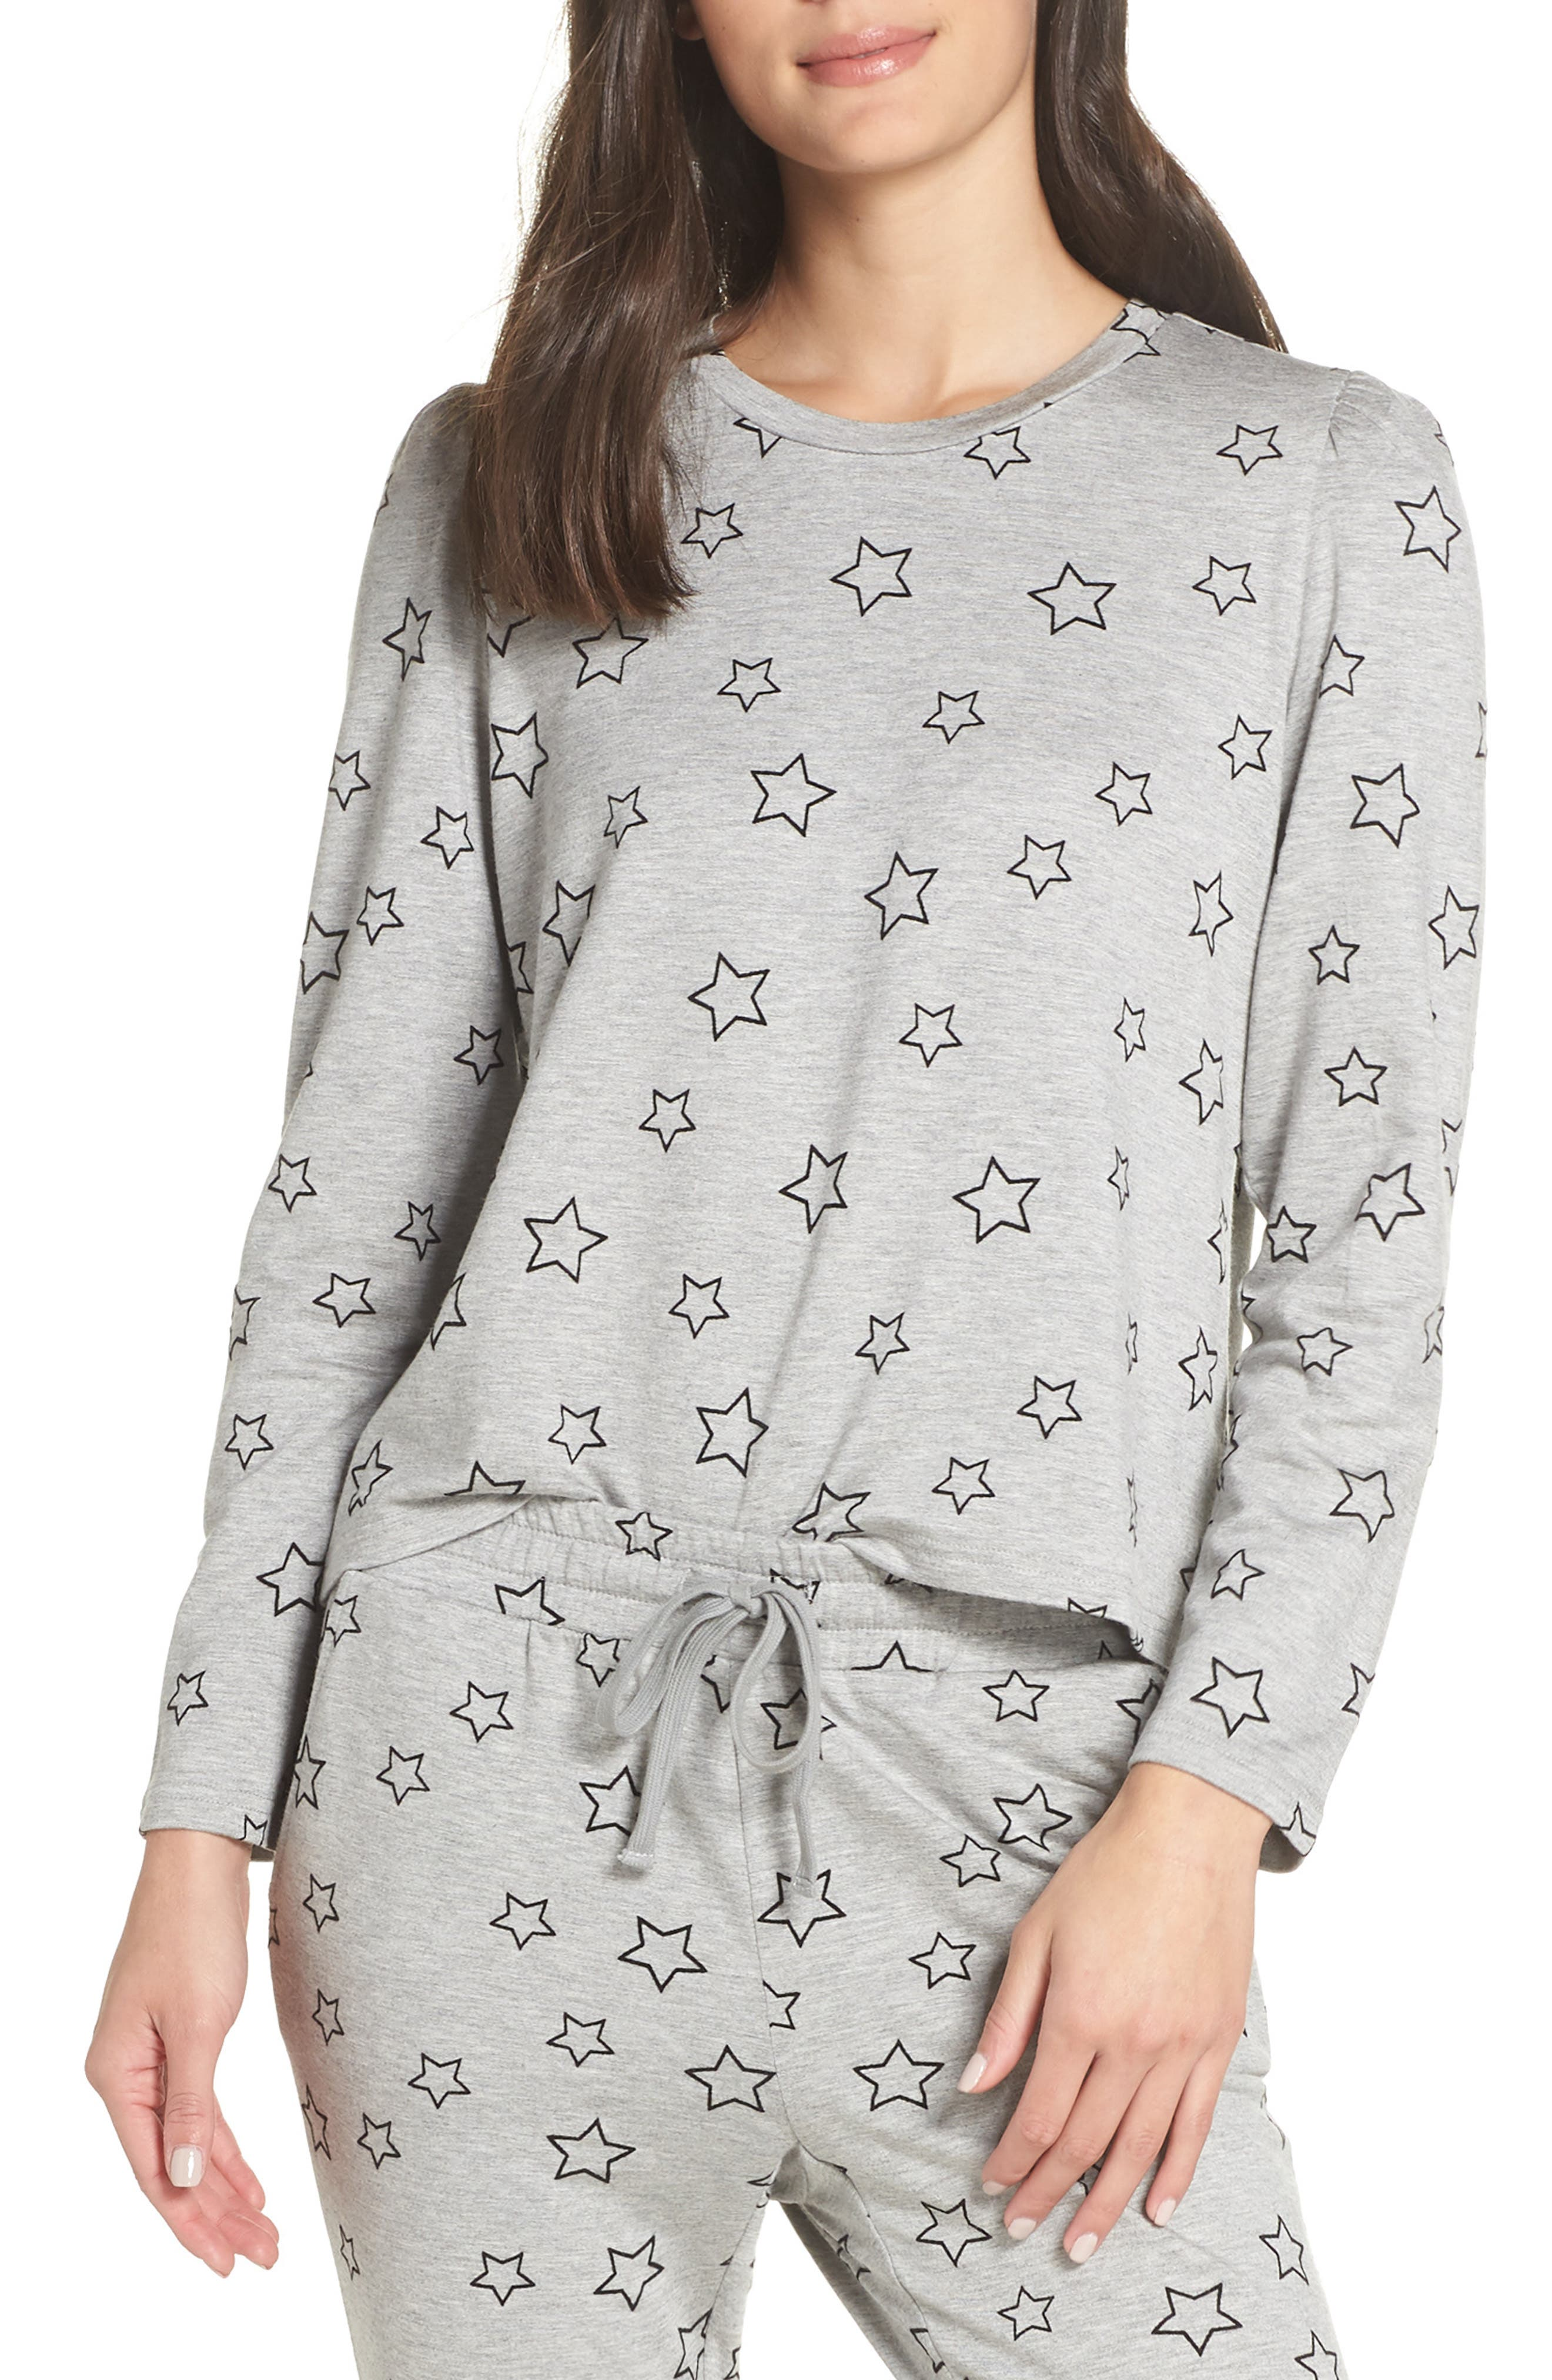 Seeing Stars Top,                             Main thumbnail 1, color,                             HEATHER GREY